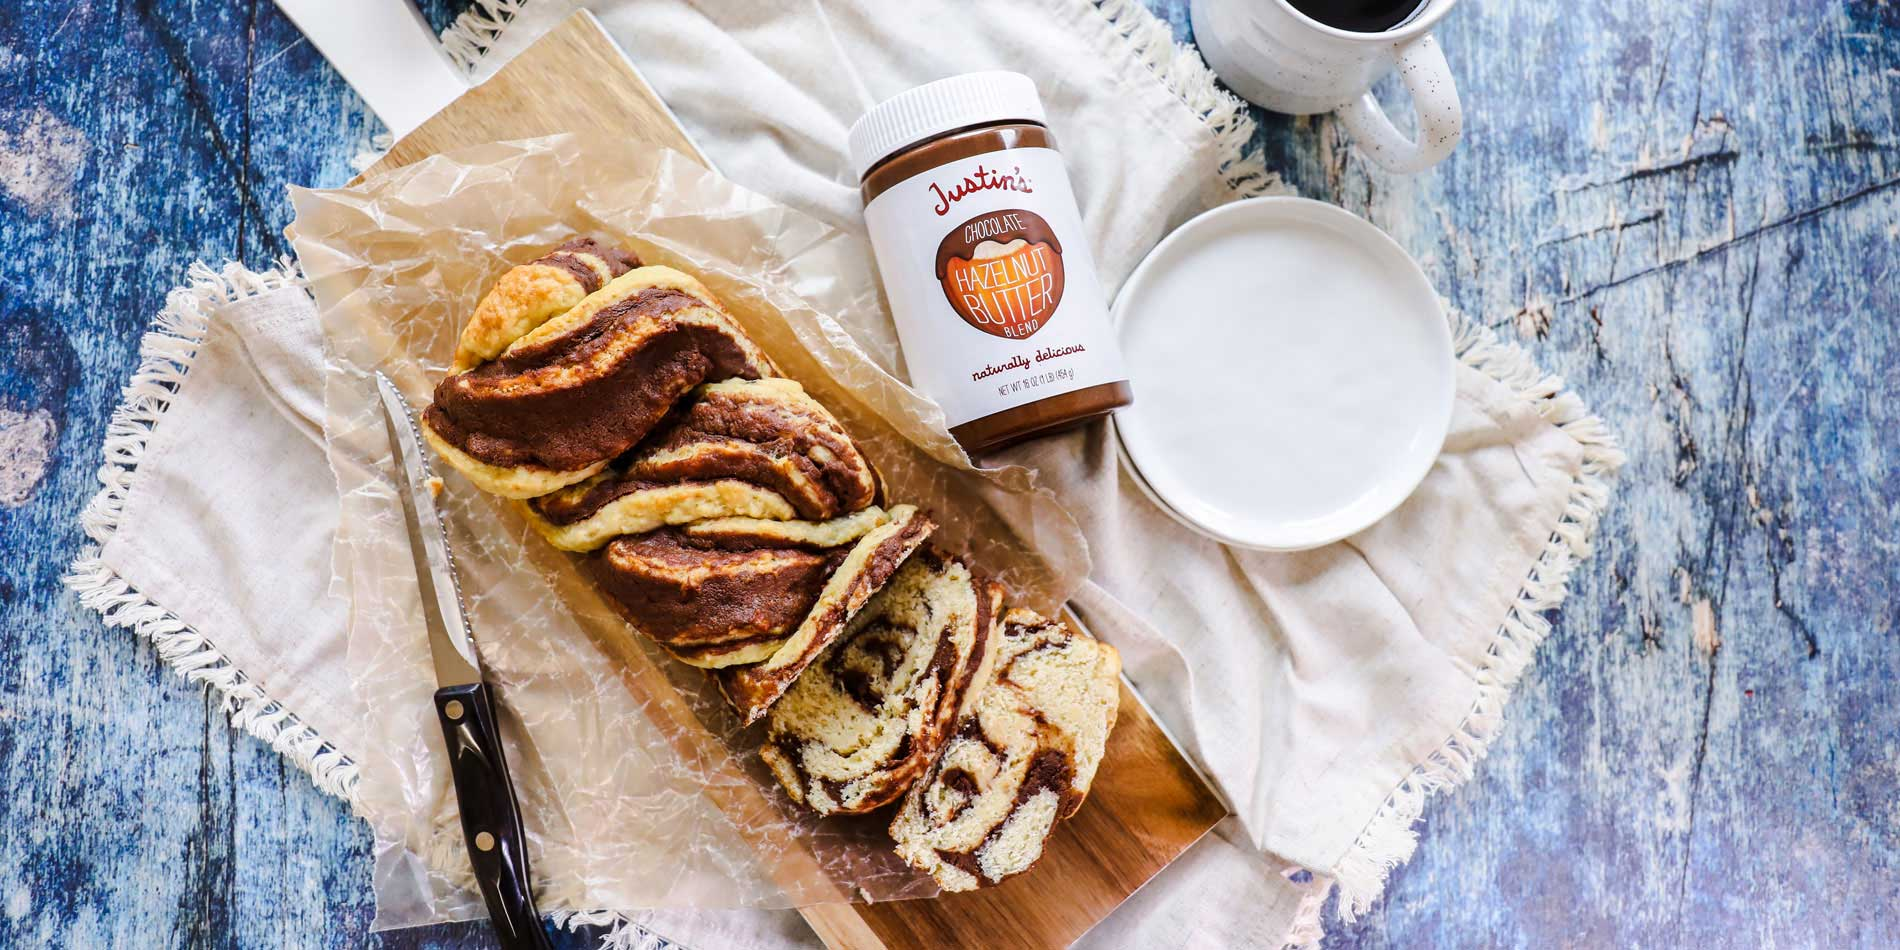 Chocolate Hazelnut Babka on a wooden serving board on a cloth beside a cup of coffee on a blue wood background